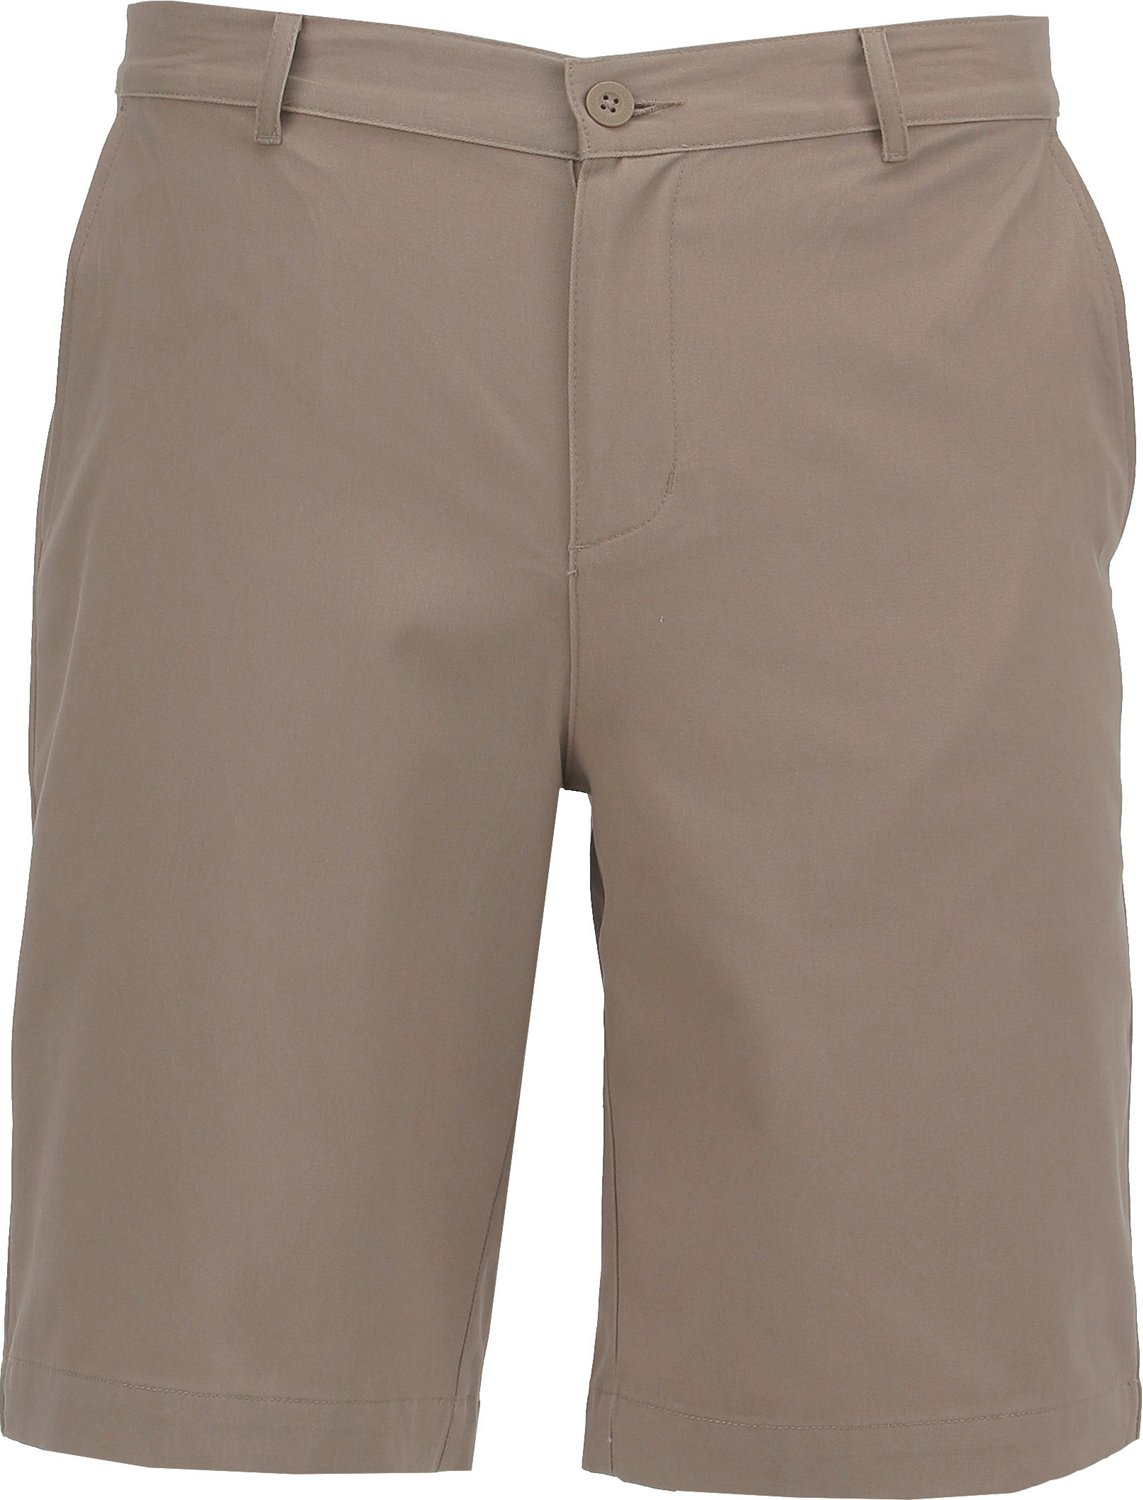 Display product reviews for Austin Trading Co. Men's Uniform Flat Front Twill Short